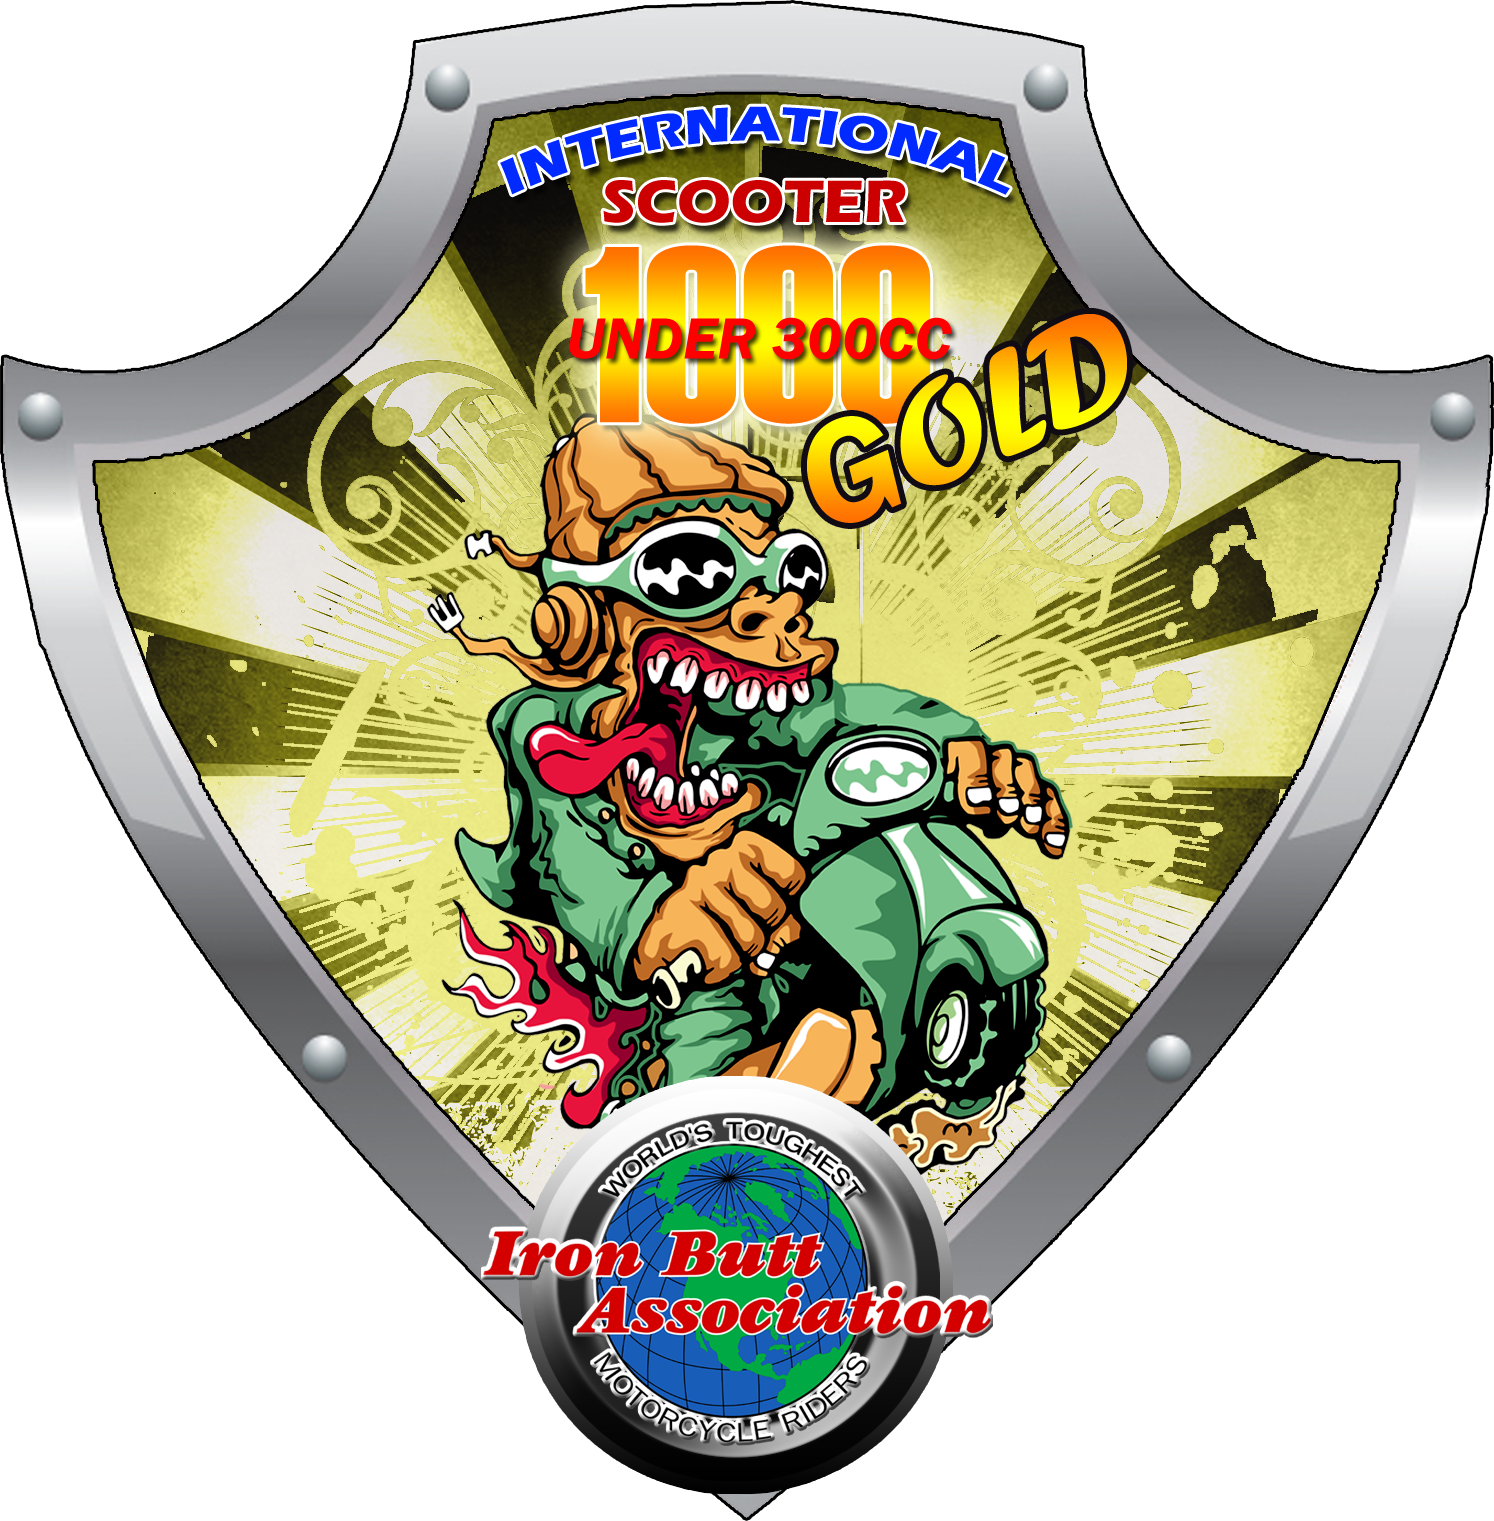 Scooter 1000 Gold Logo